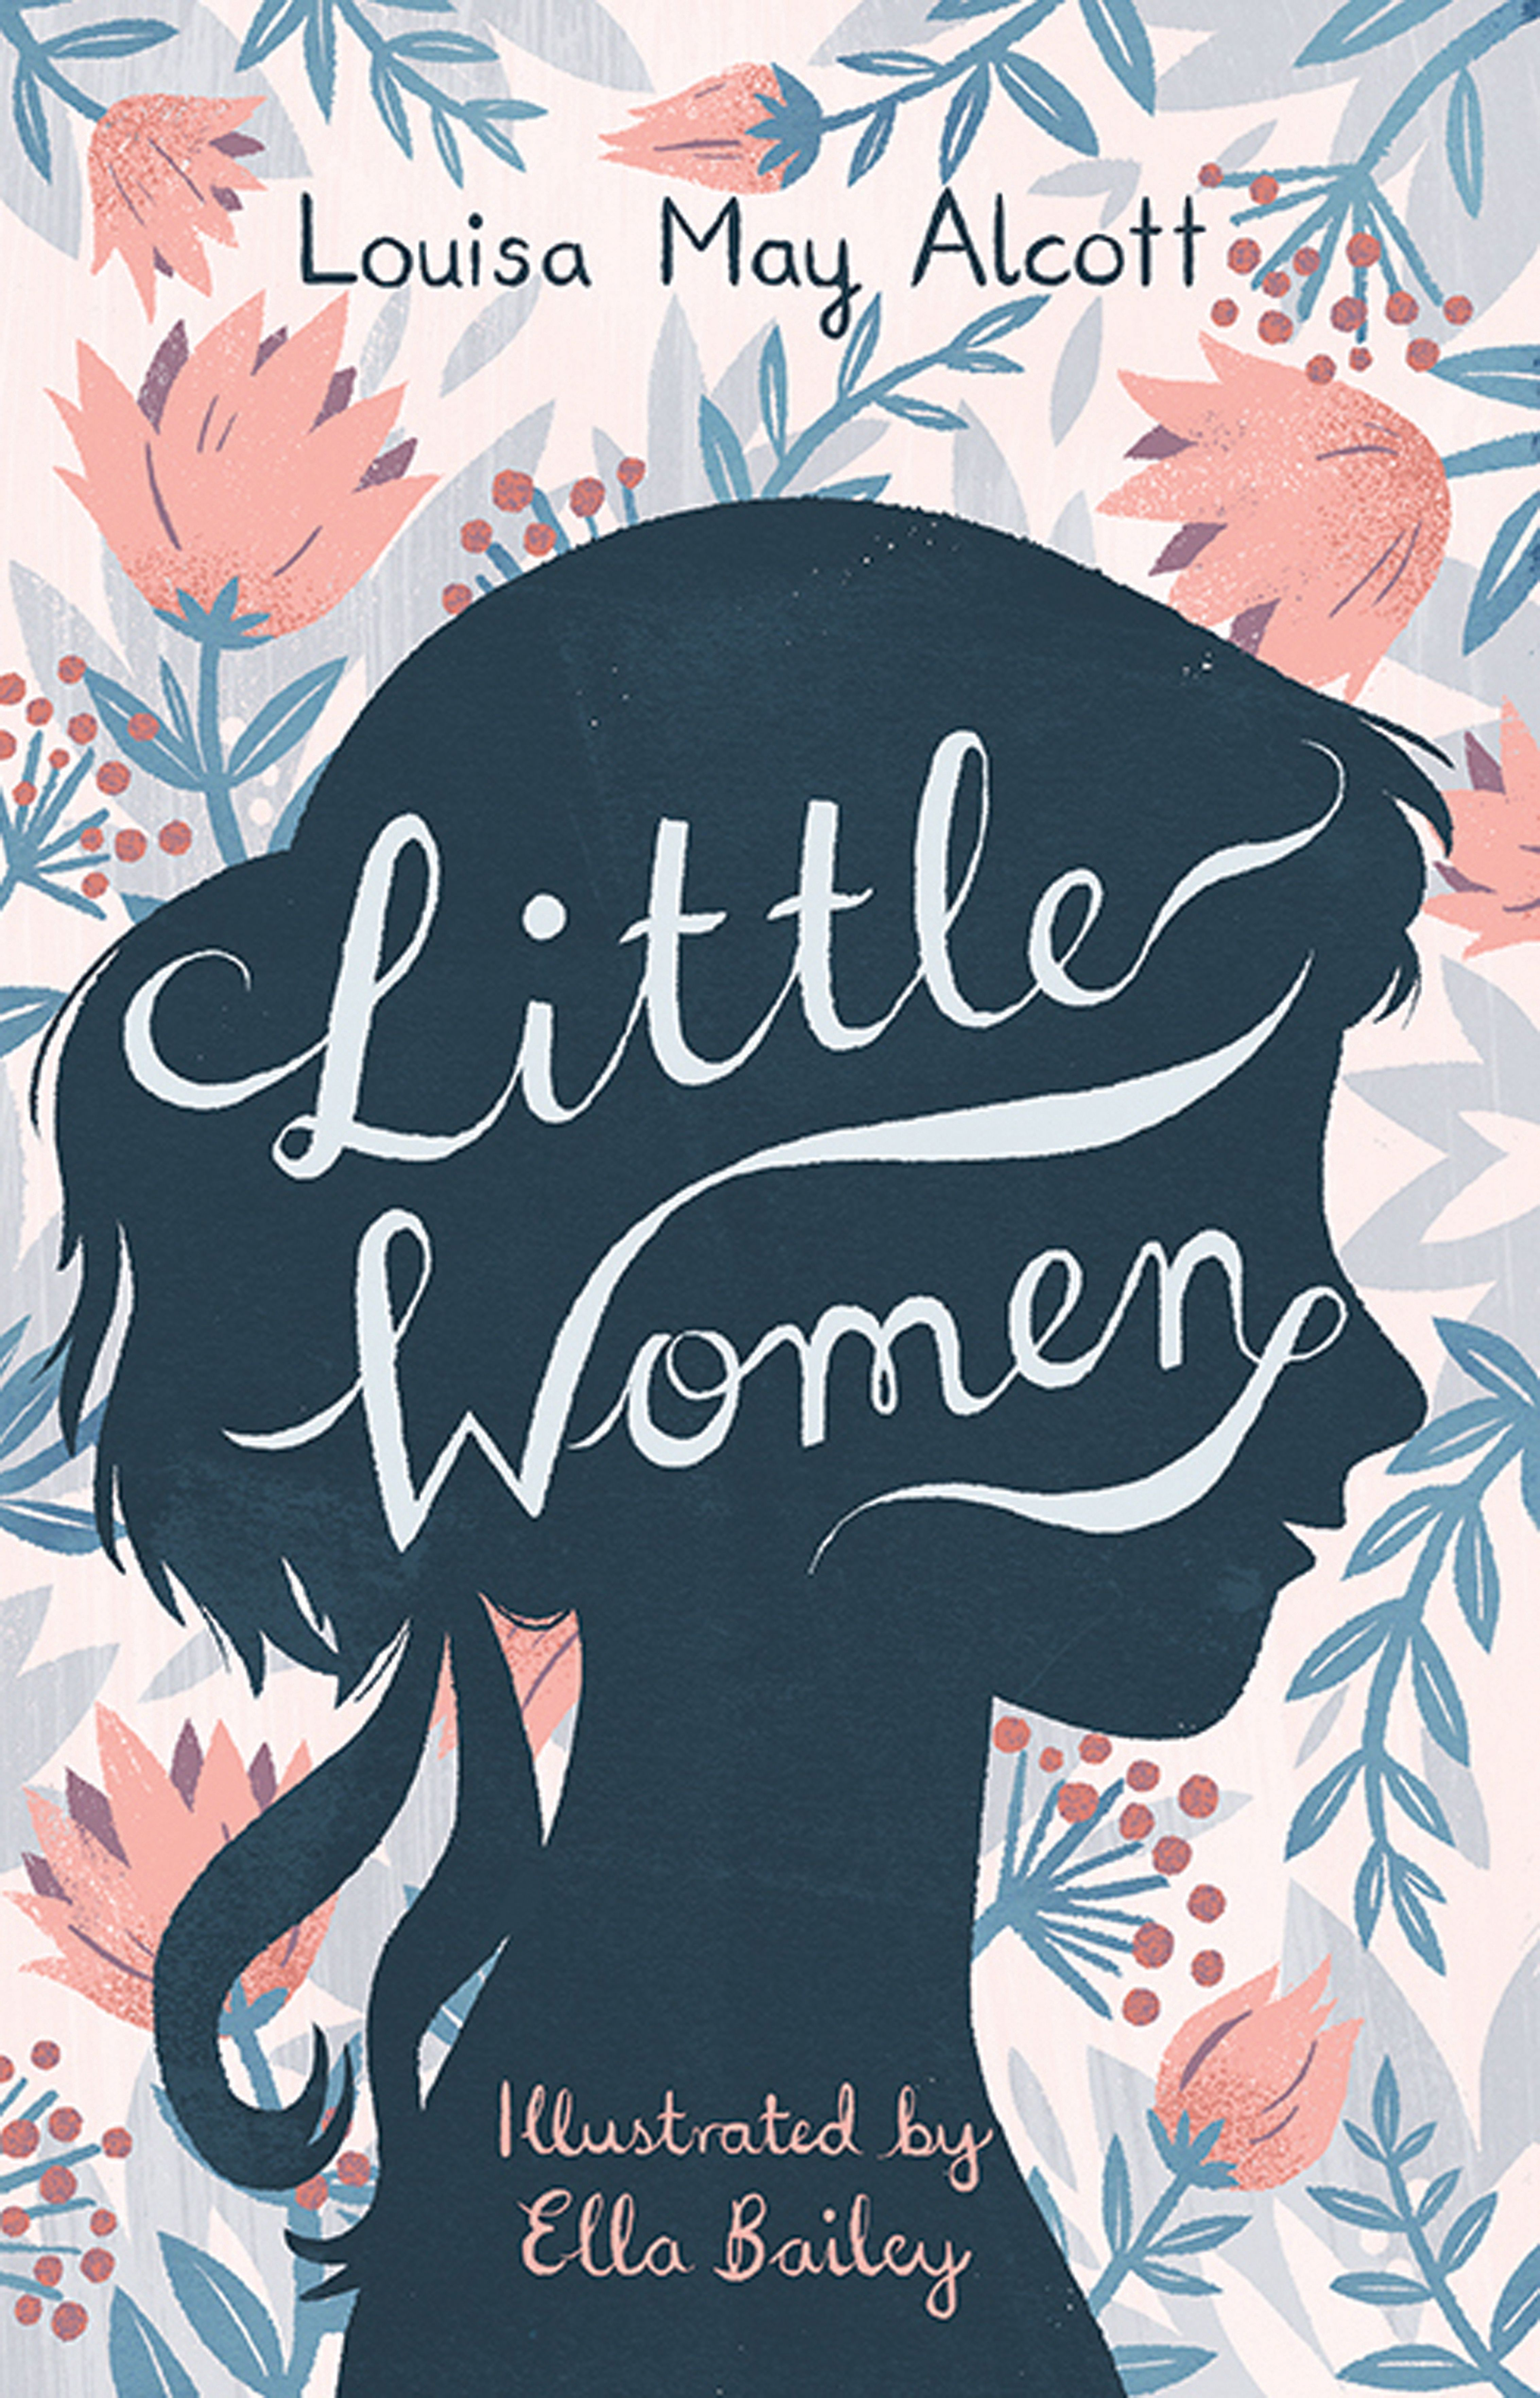 A literary analysis of the book little women by louisa may alcott